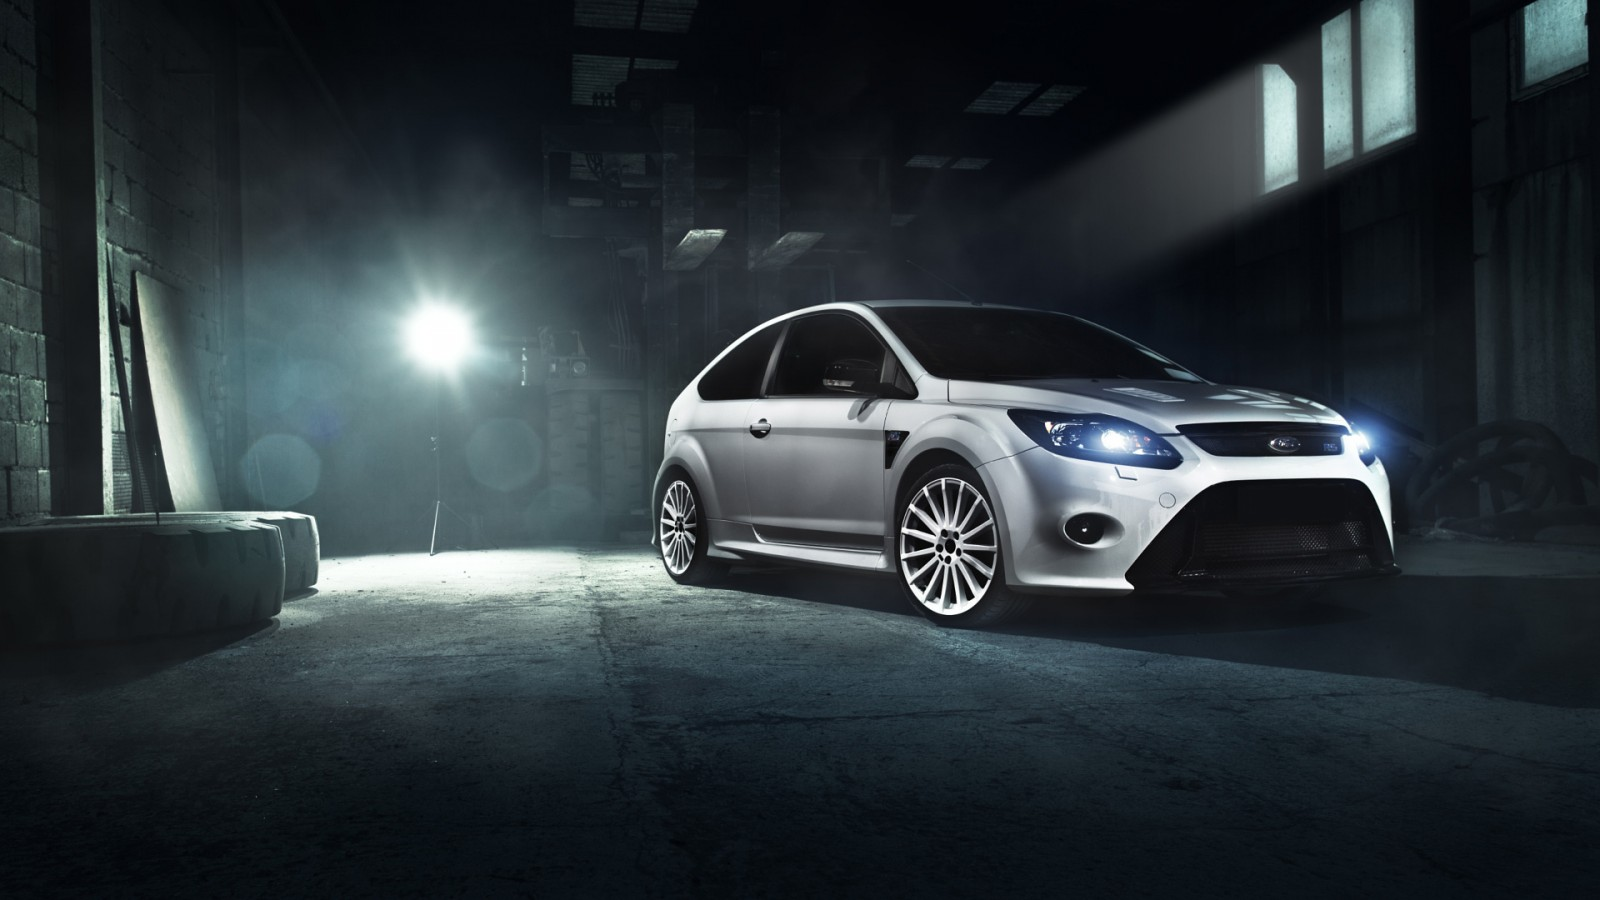 Ford Focus Rs White Wallpaper Hd Car Wallpapers Id 6874